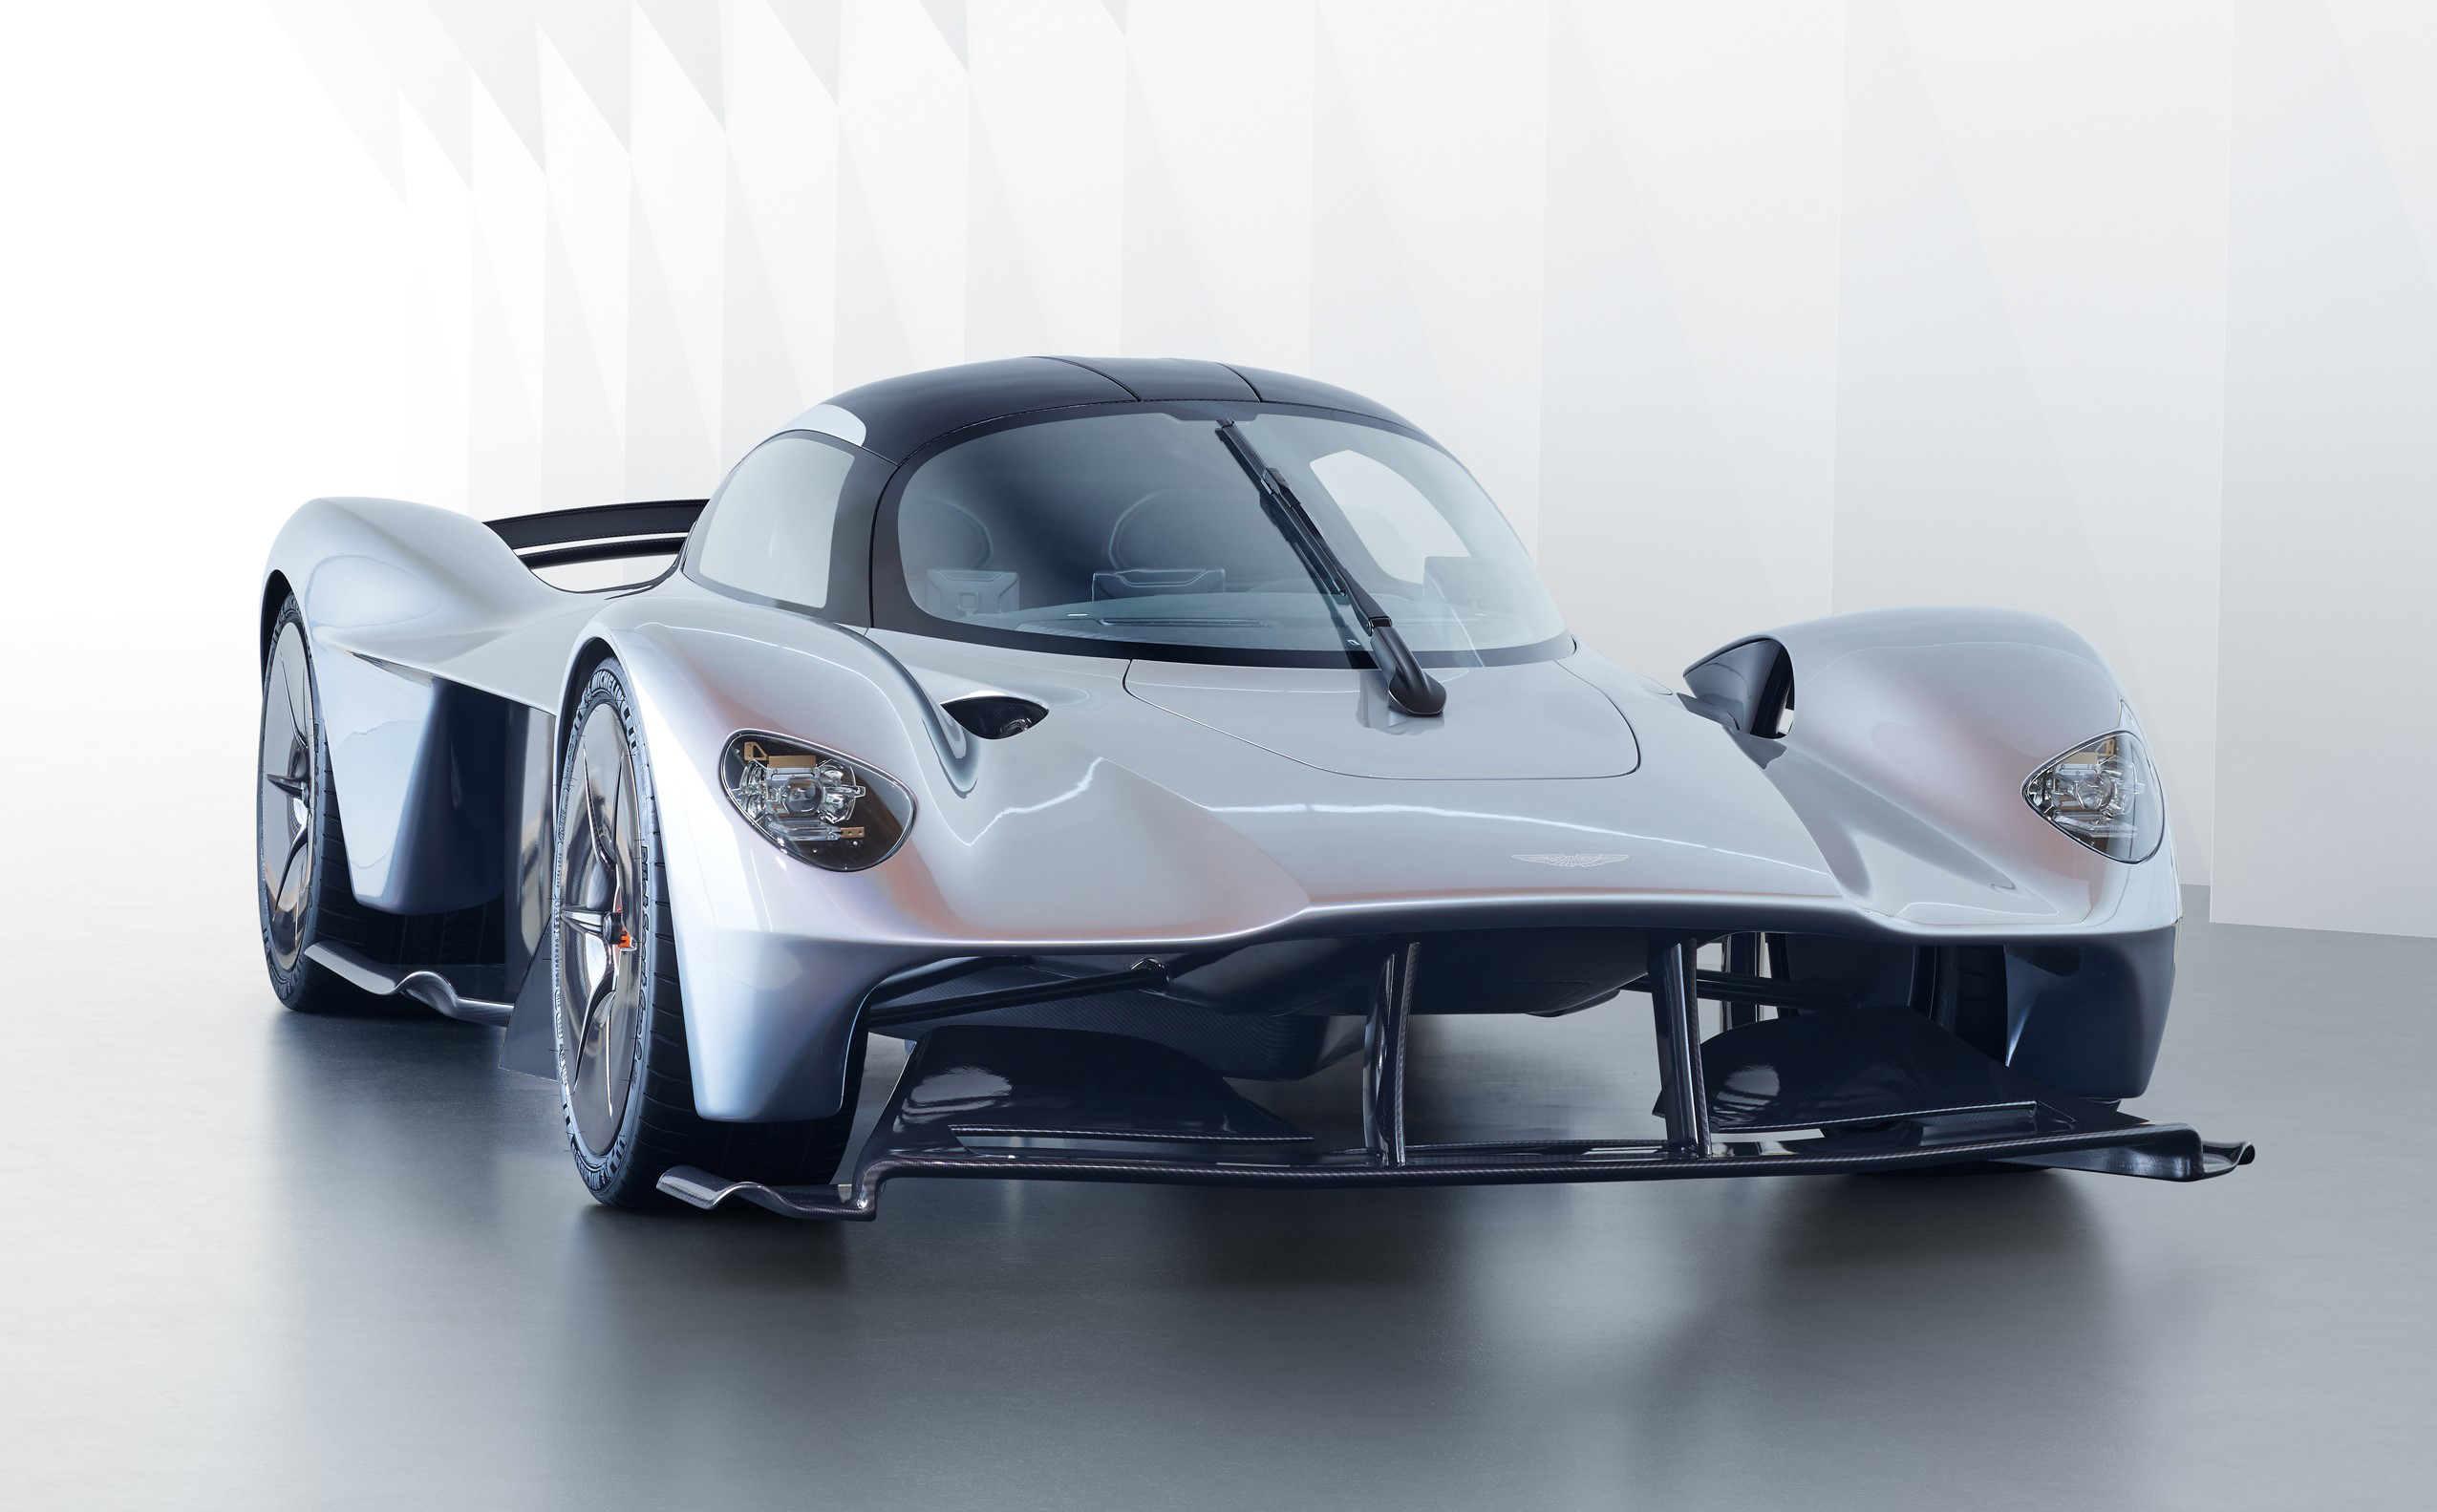 aston martin valkyrie only has room for two ninety-eight percentile